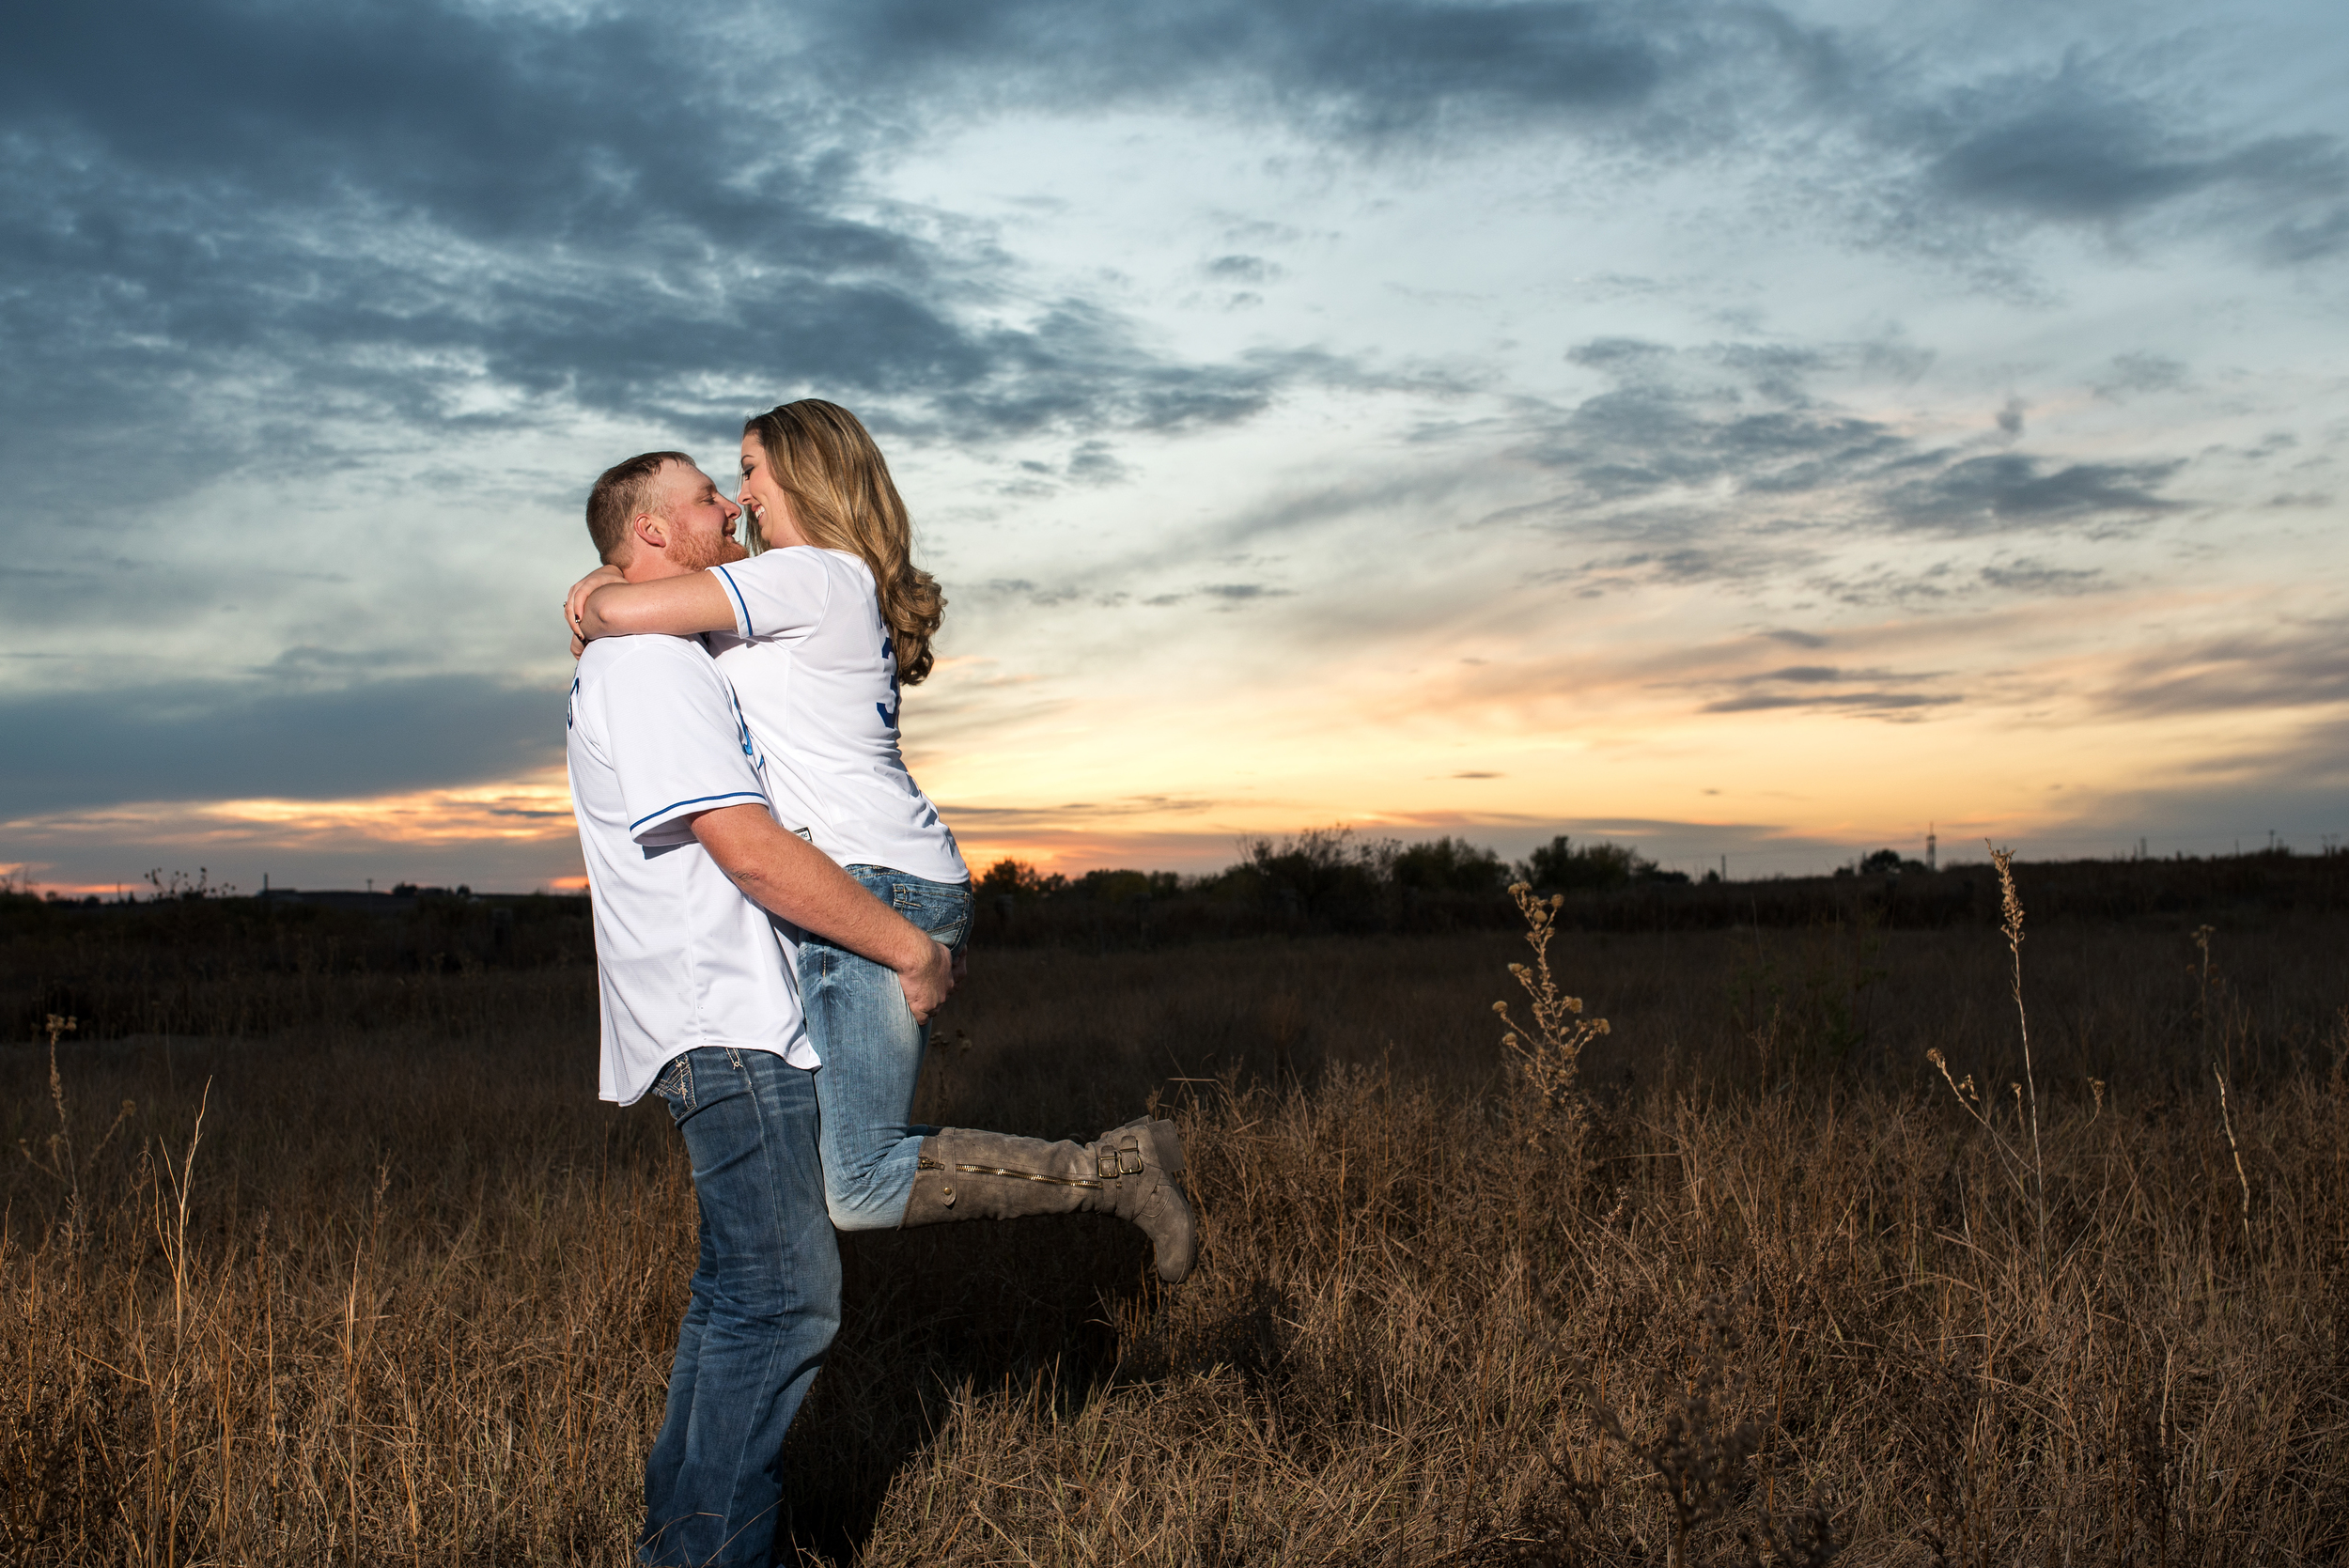 engagement-photography-gardencity-ks-29.jpg